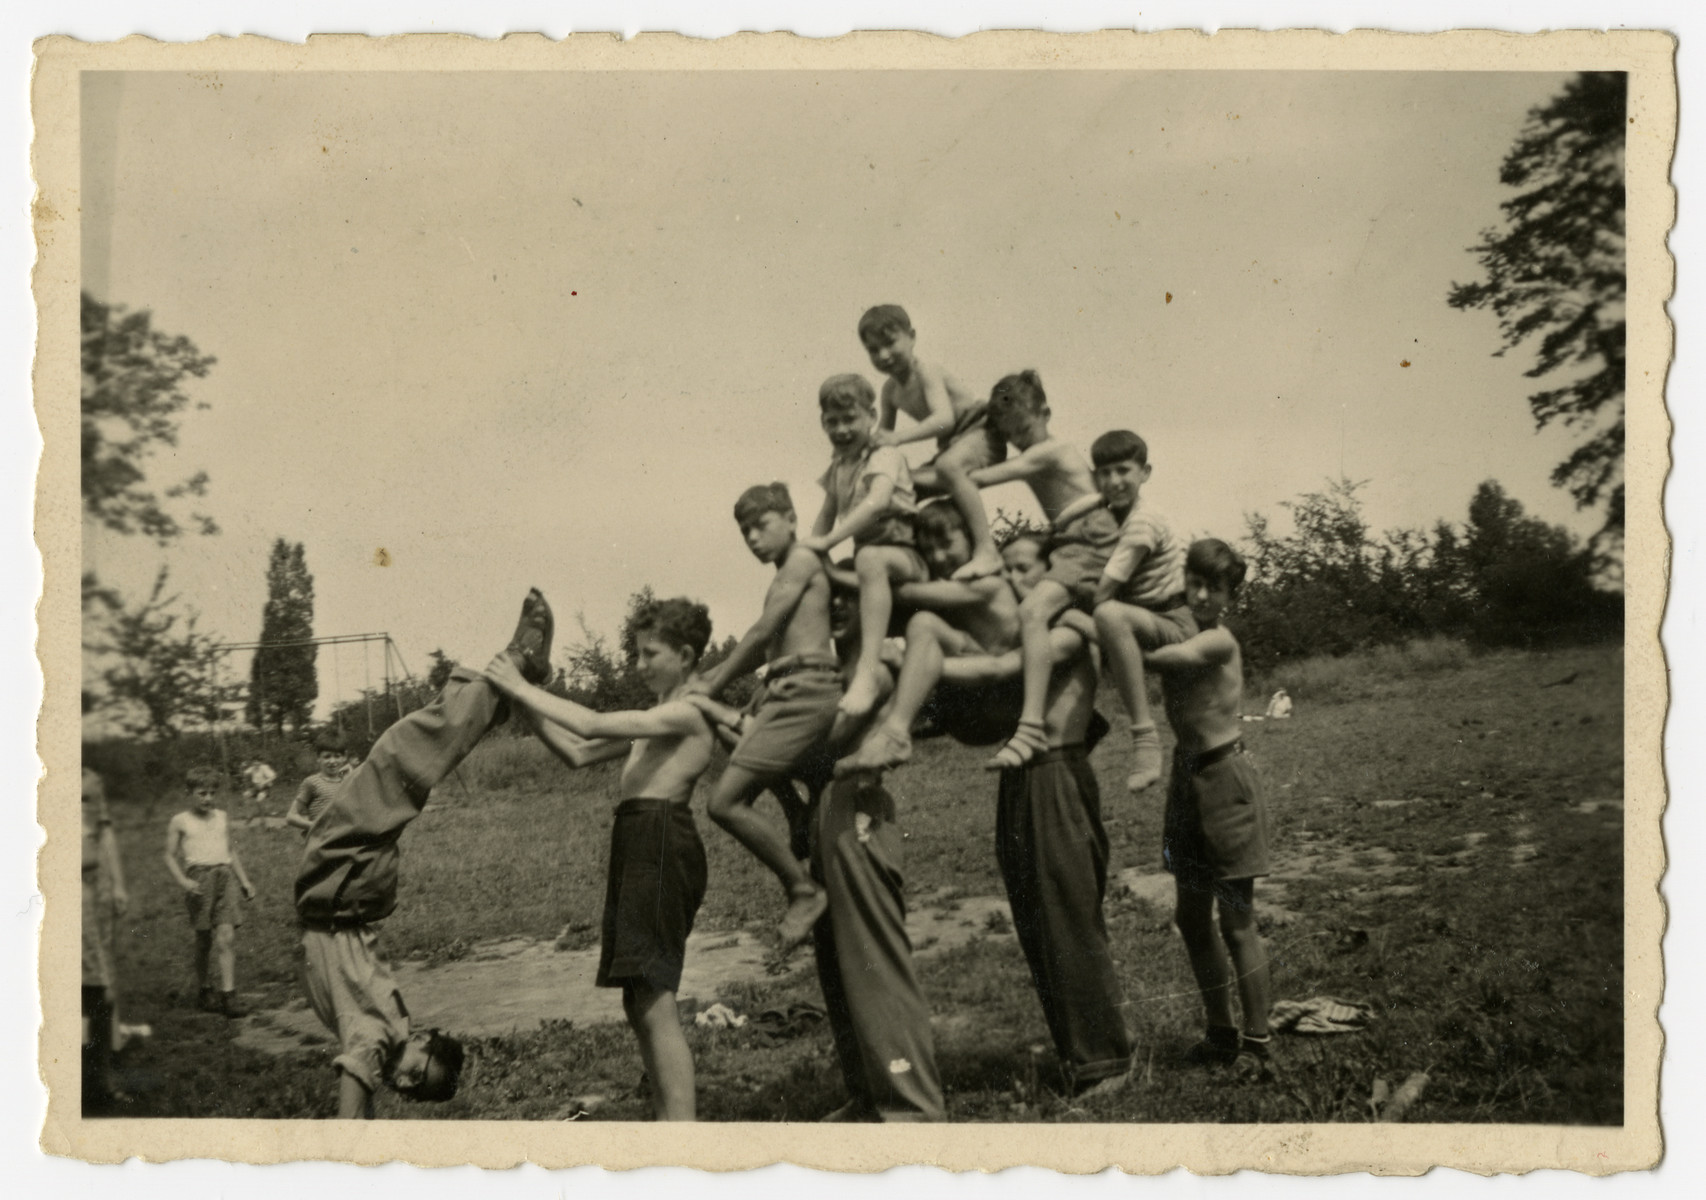 Jewish orphans in Home de la-Bas in Aische-en-Refail build a human pyramid.  George Sylin is holding one counselor's feet and Hans is in the rear. Charles Rojer in the center squashed down and beginning to slide through the arms of the rear support counselor.